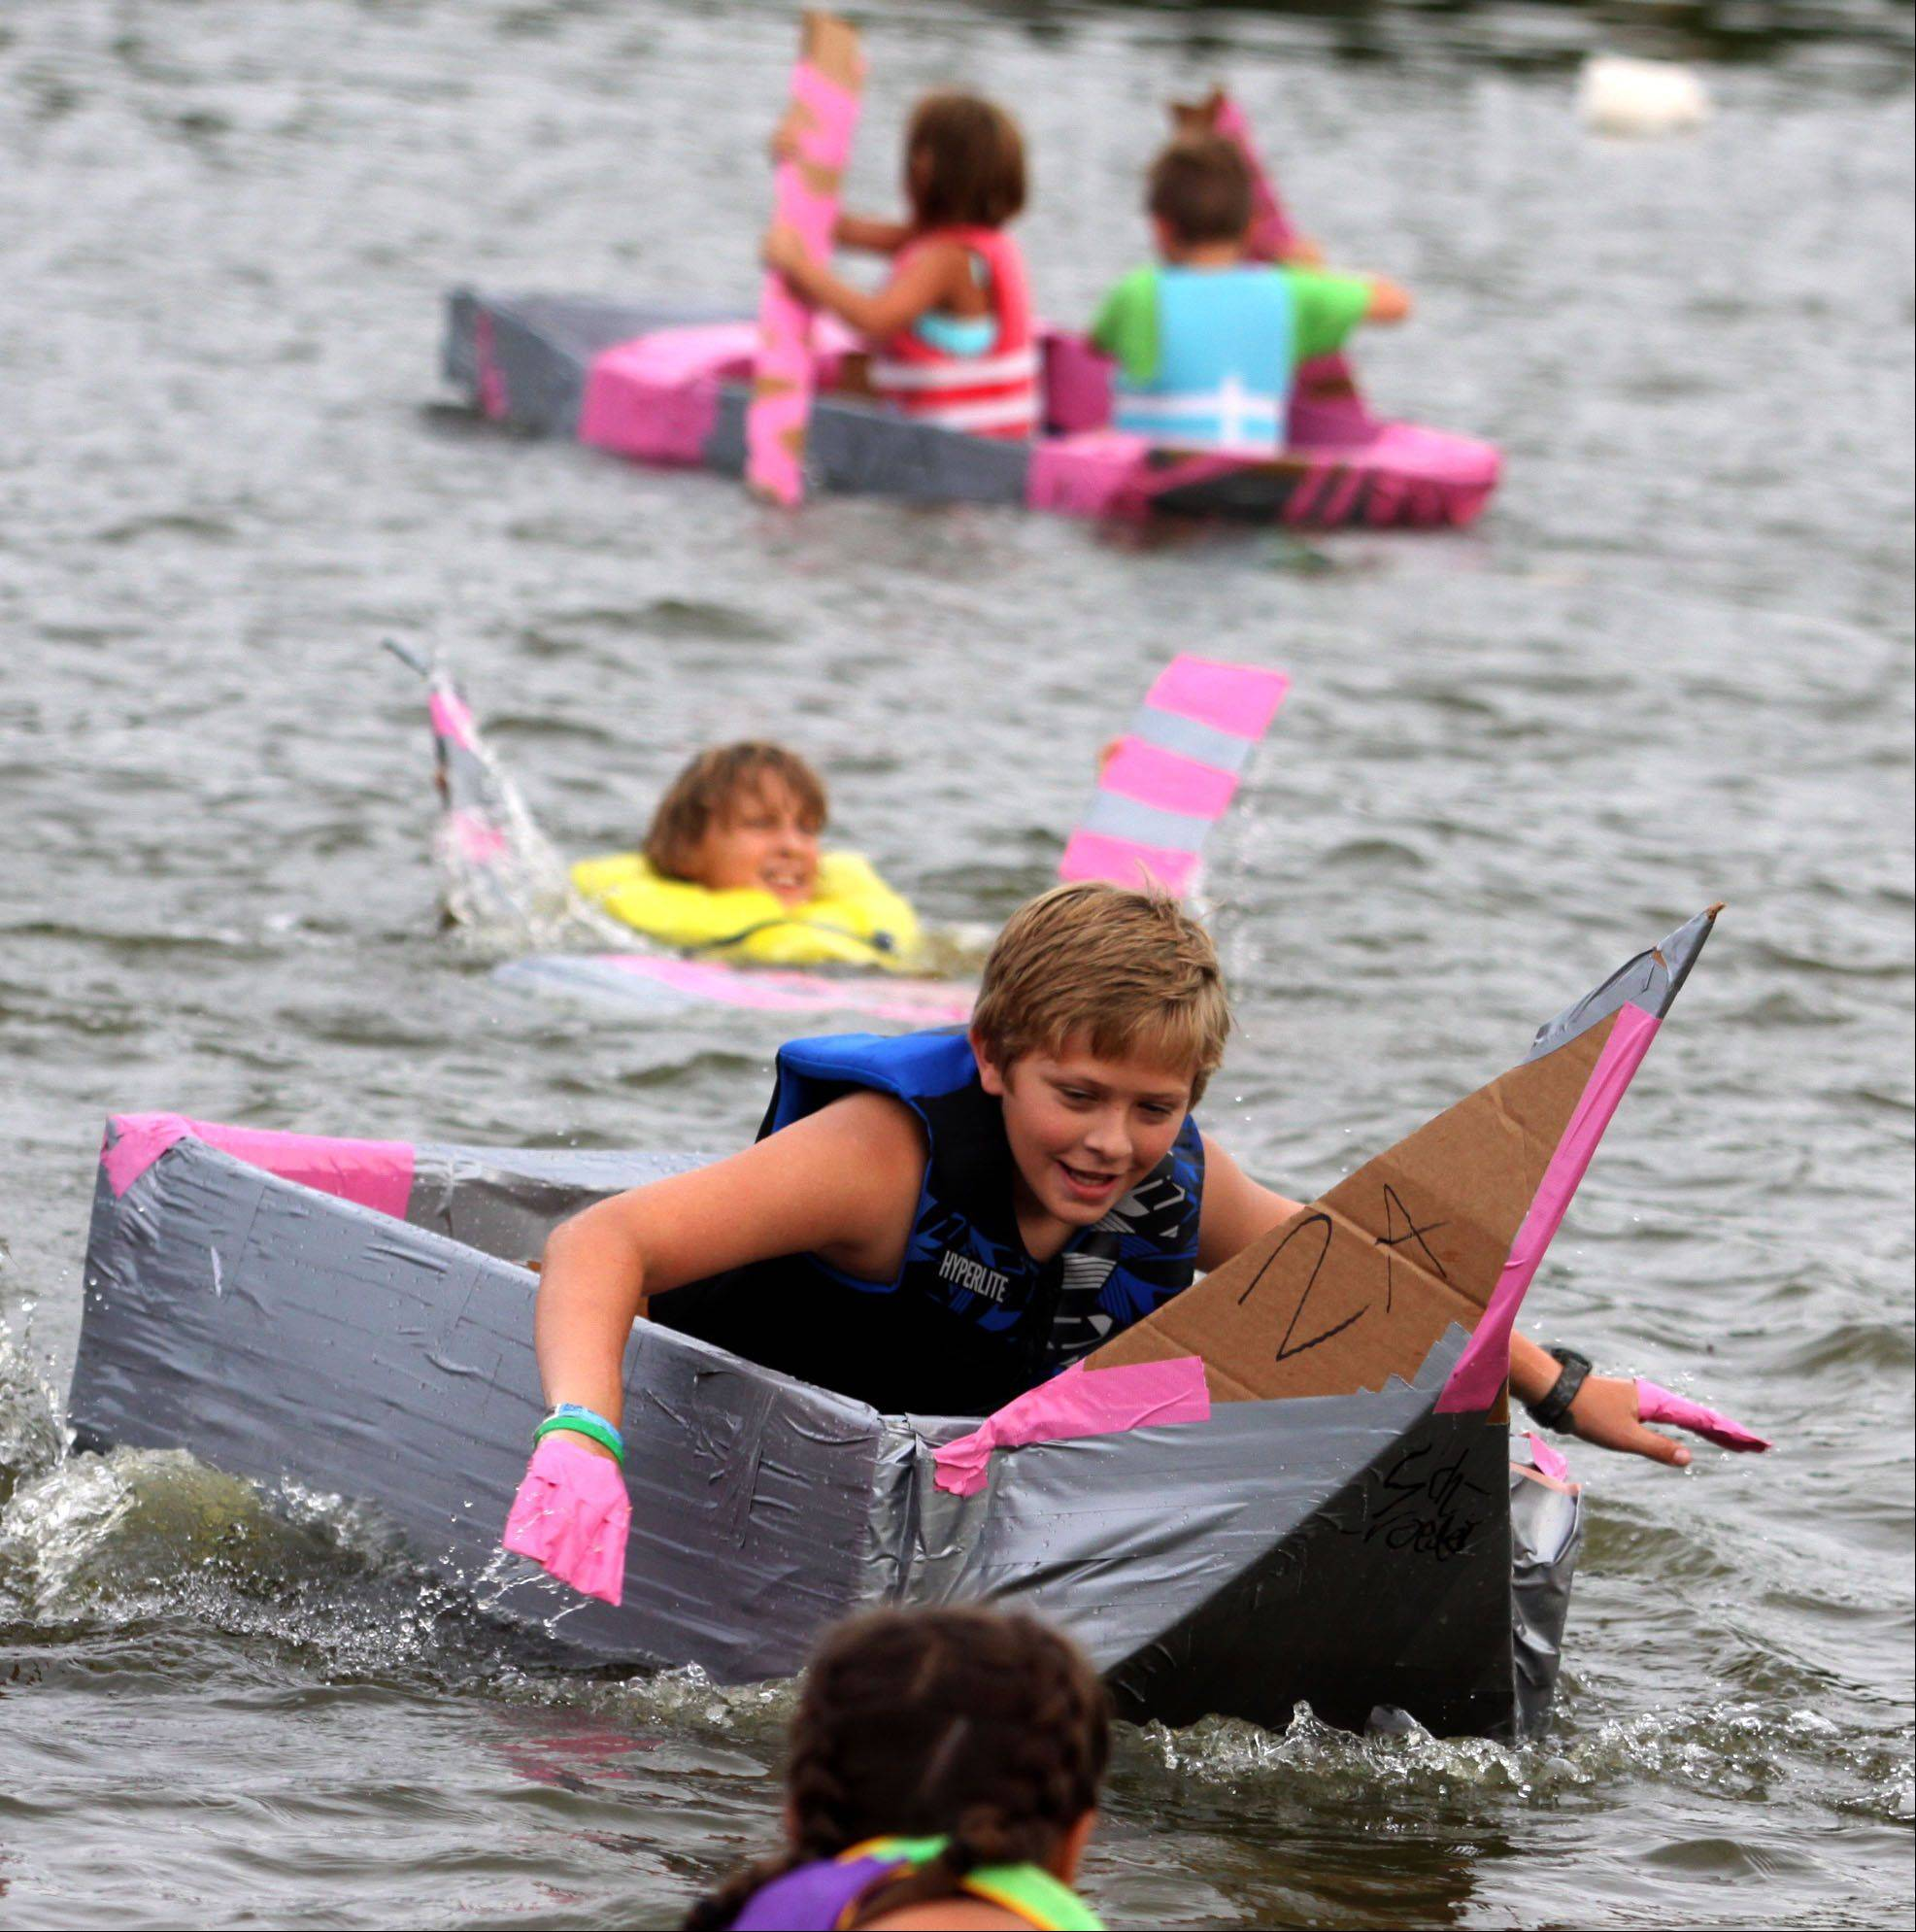 His hands fashioned into duct-tape paddles, ten-year-old Aaron Kirk of Algonquin places first during the Cardboard Boat Regatta juniors race as part of Founders' Days festivities on the Fox River in Algonquin Thursday night.